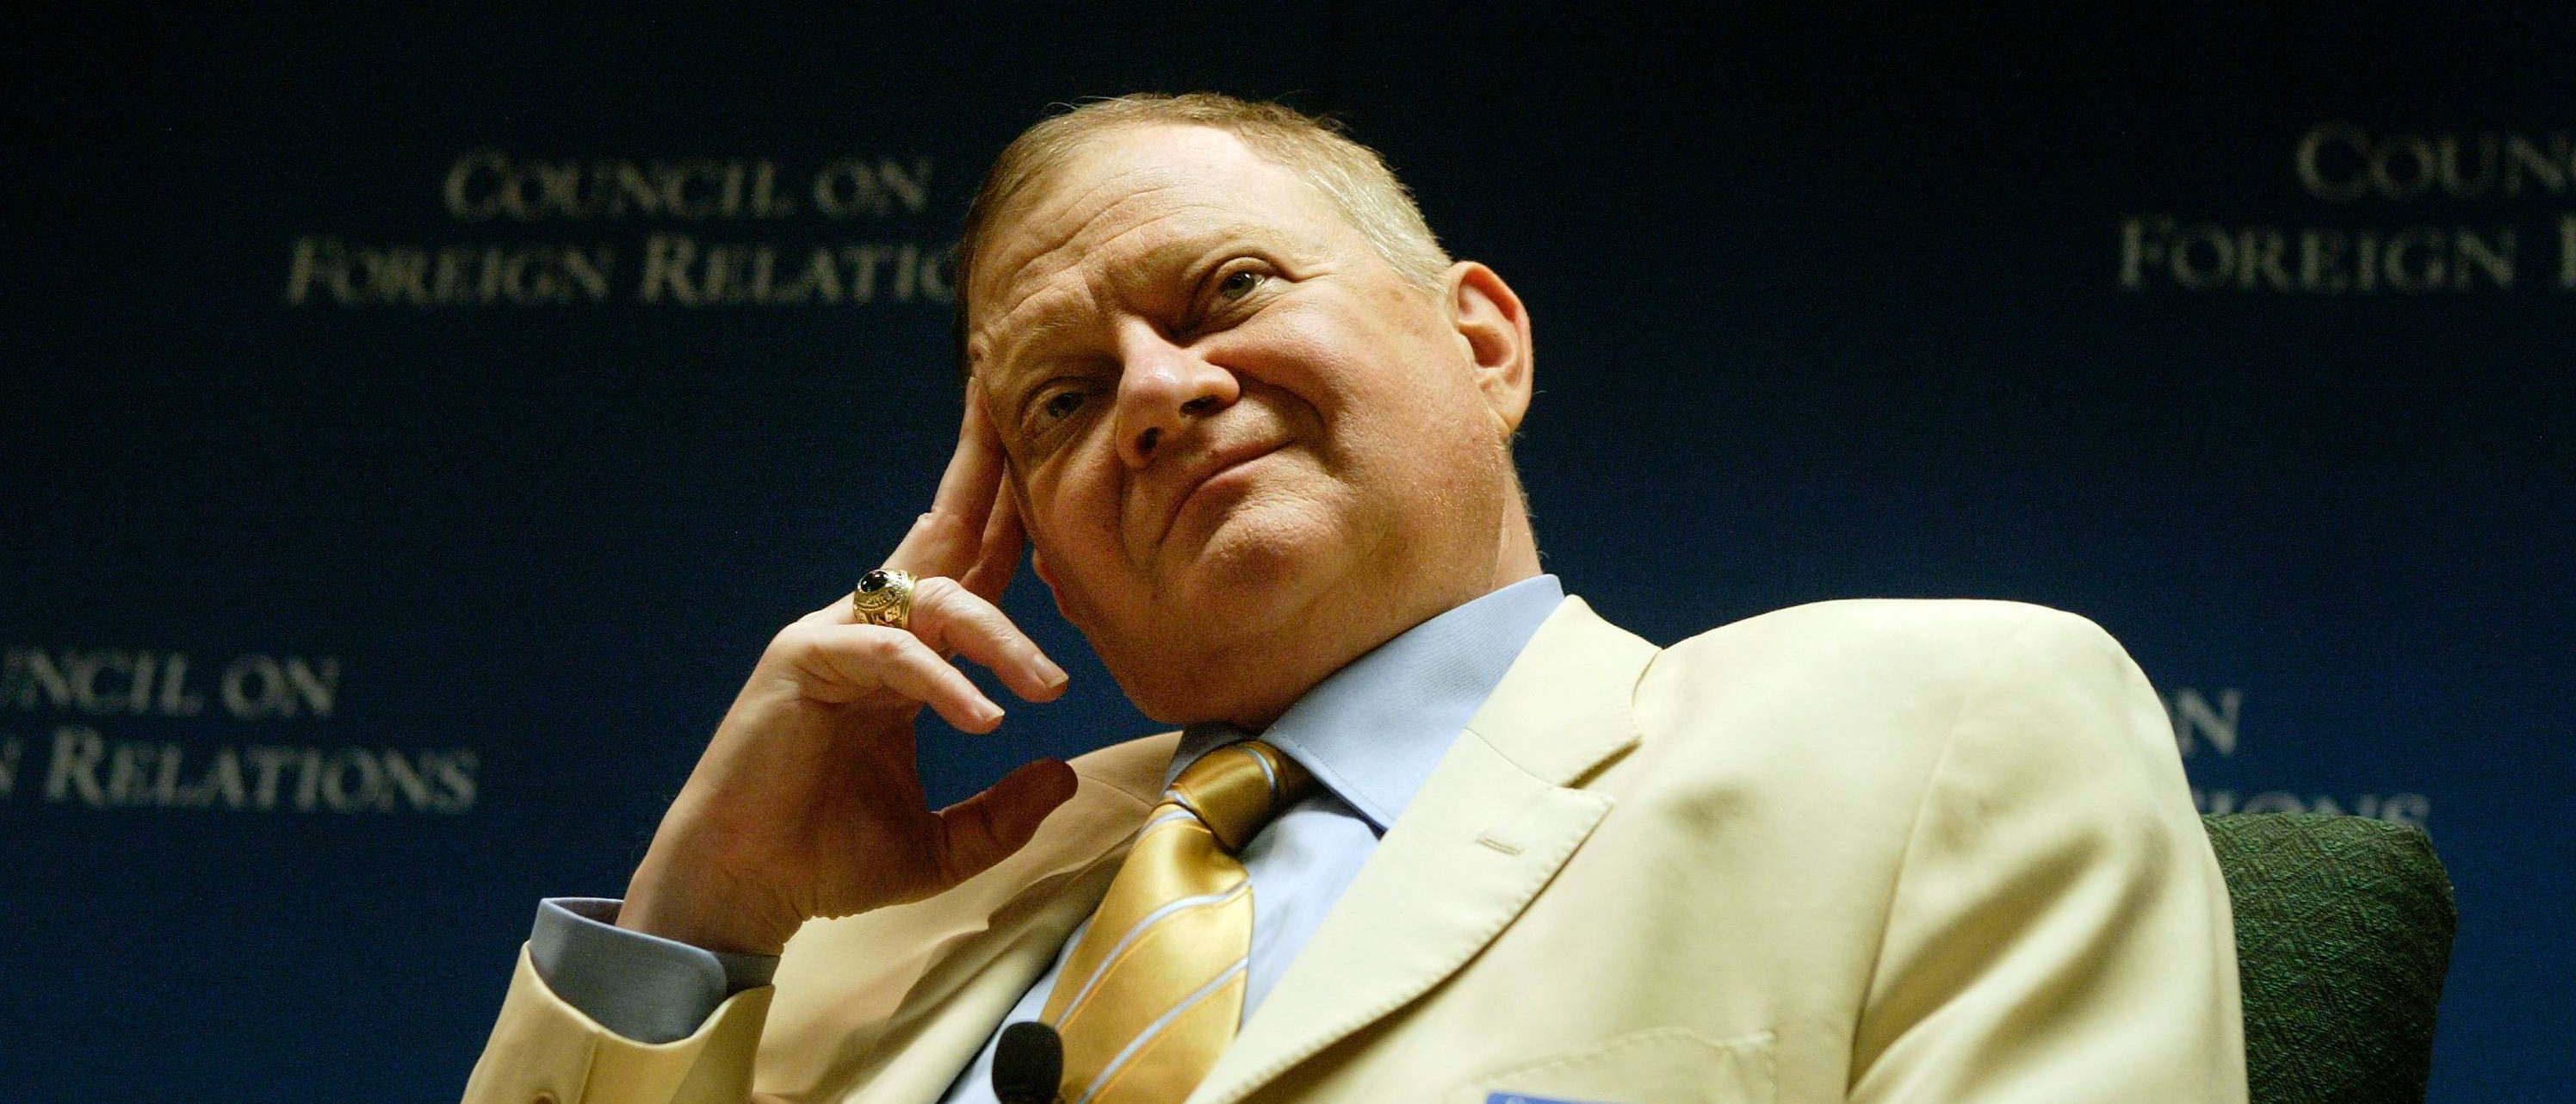 Tom Clancy's Widow Expands Suit, Says She Owns Rights To John Clark Character Too